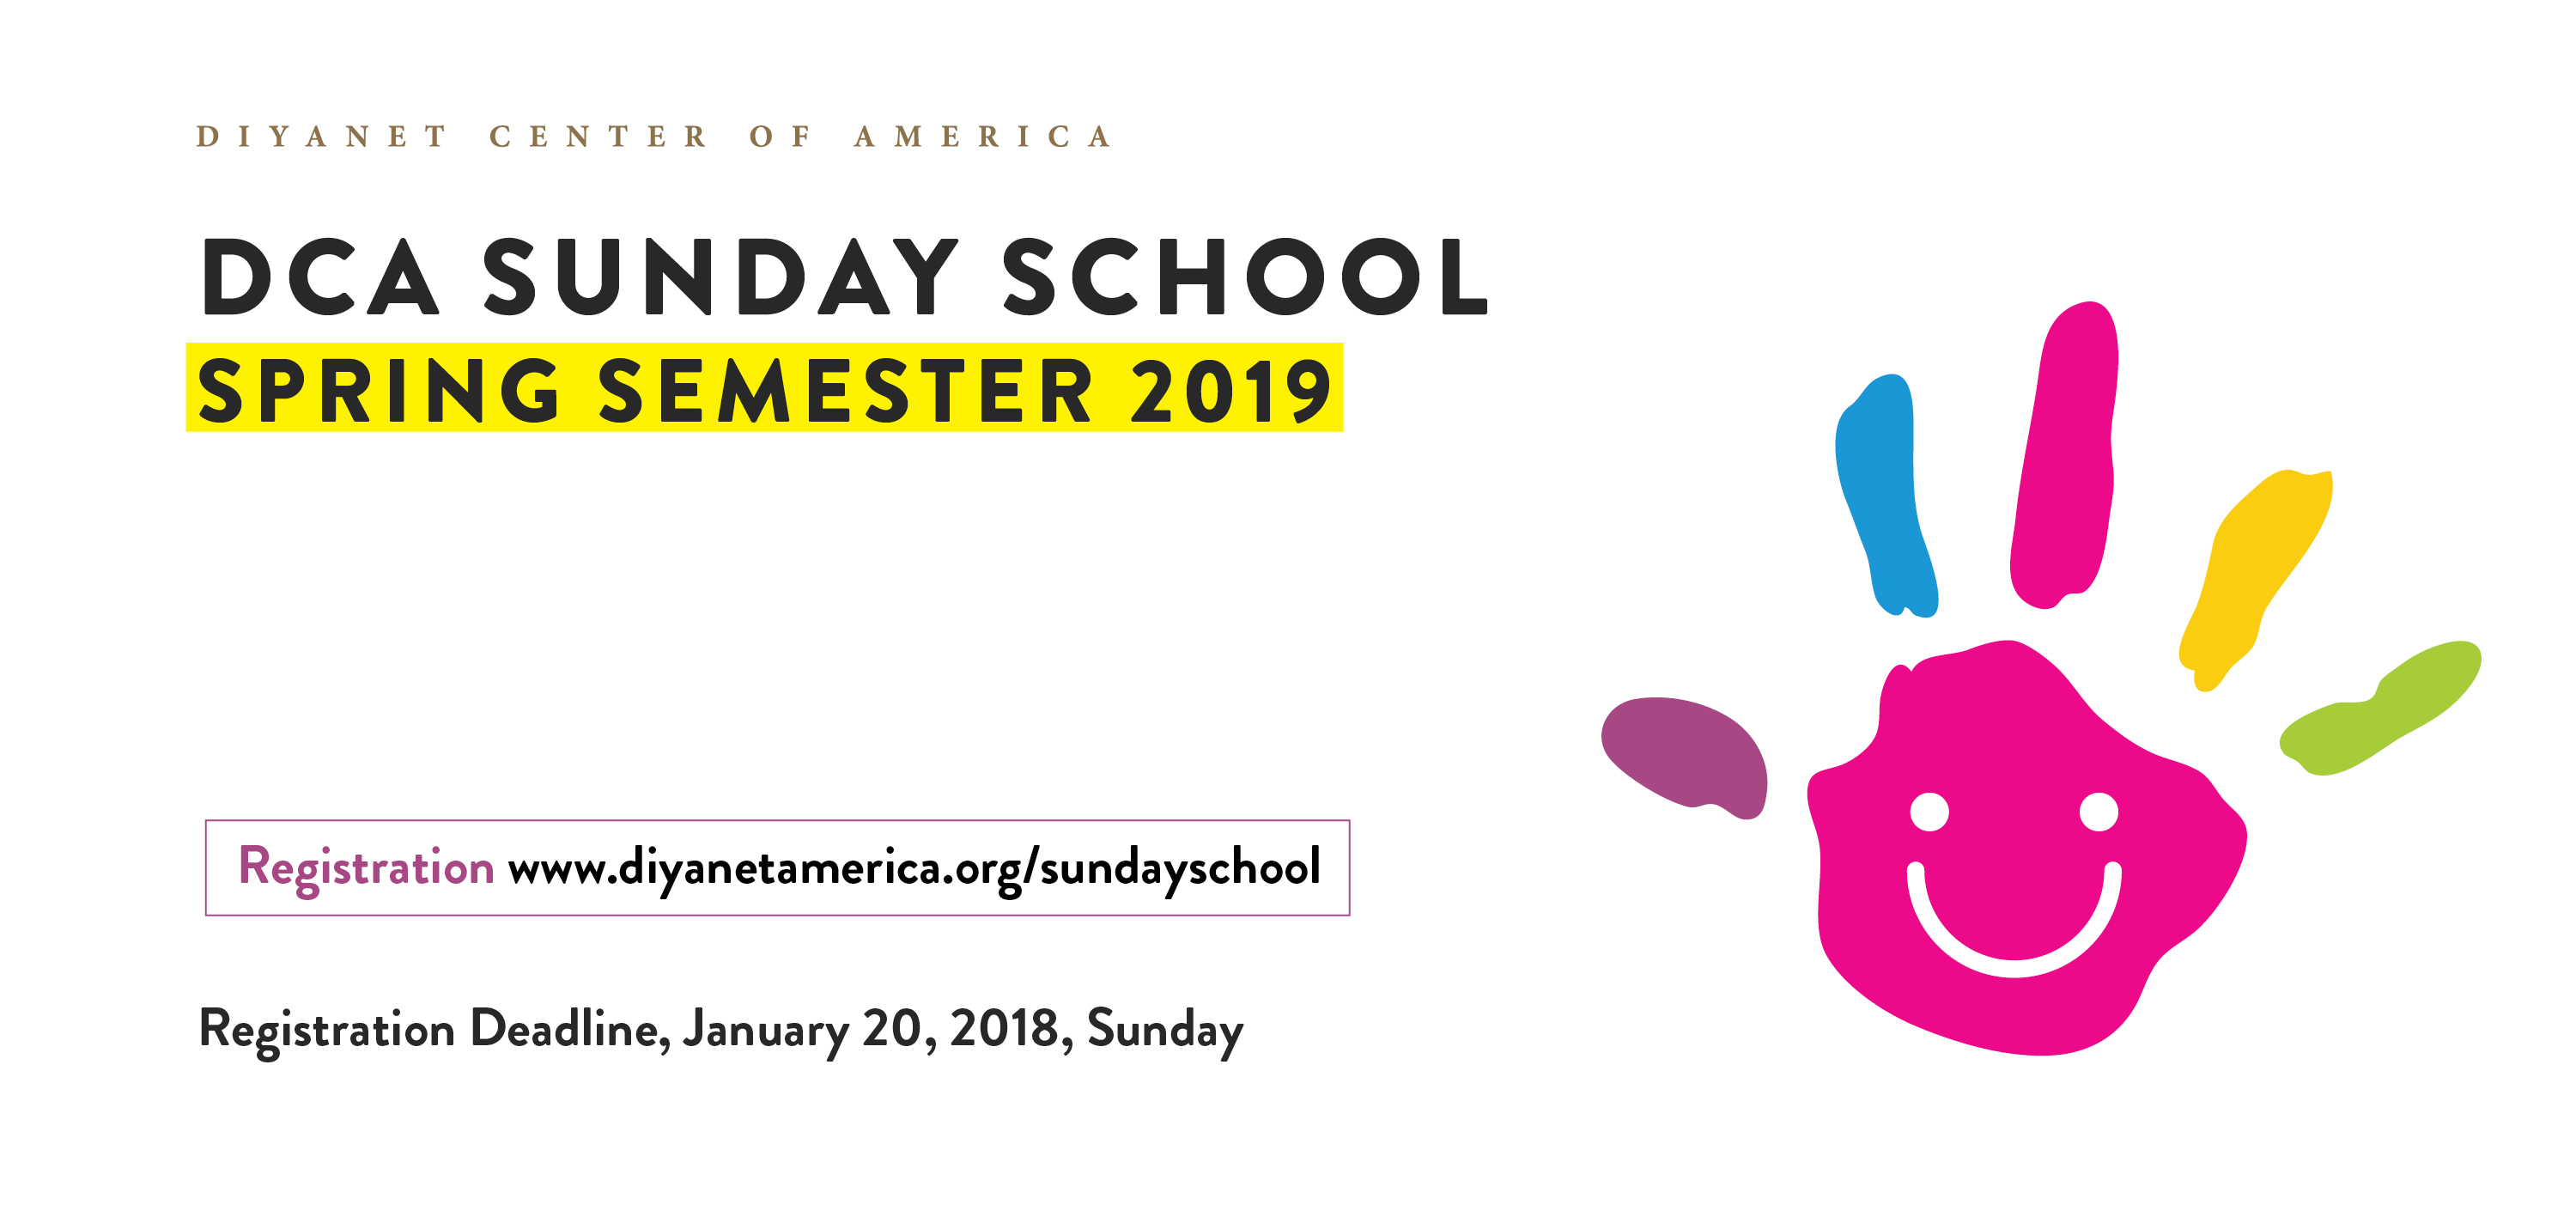 DCA Sunday School Spring Semester 2019